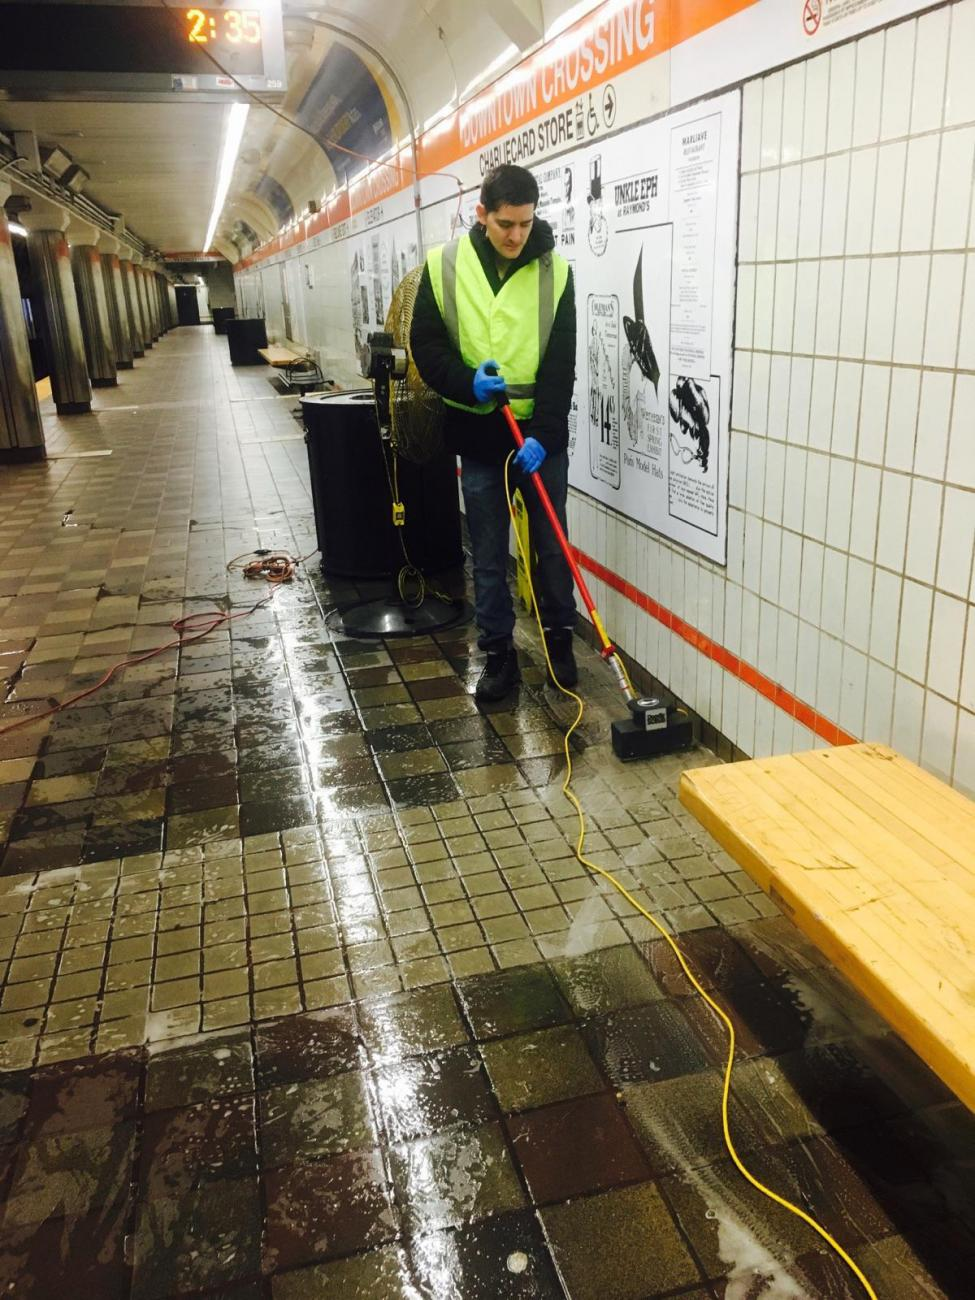 A worker cleans at Downtown Crossing